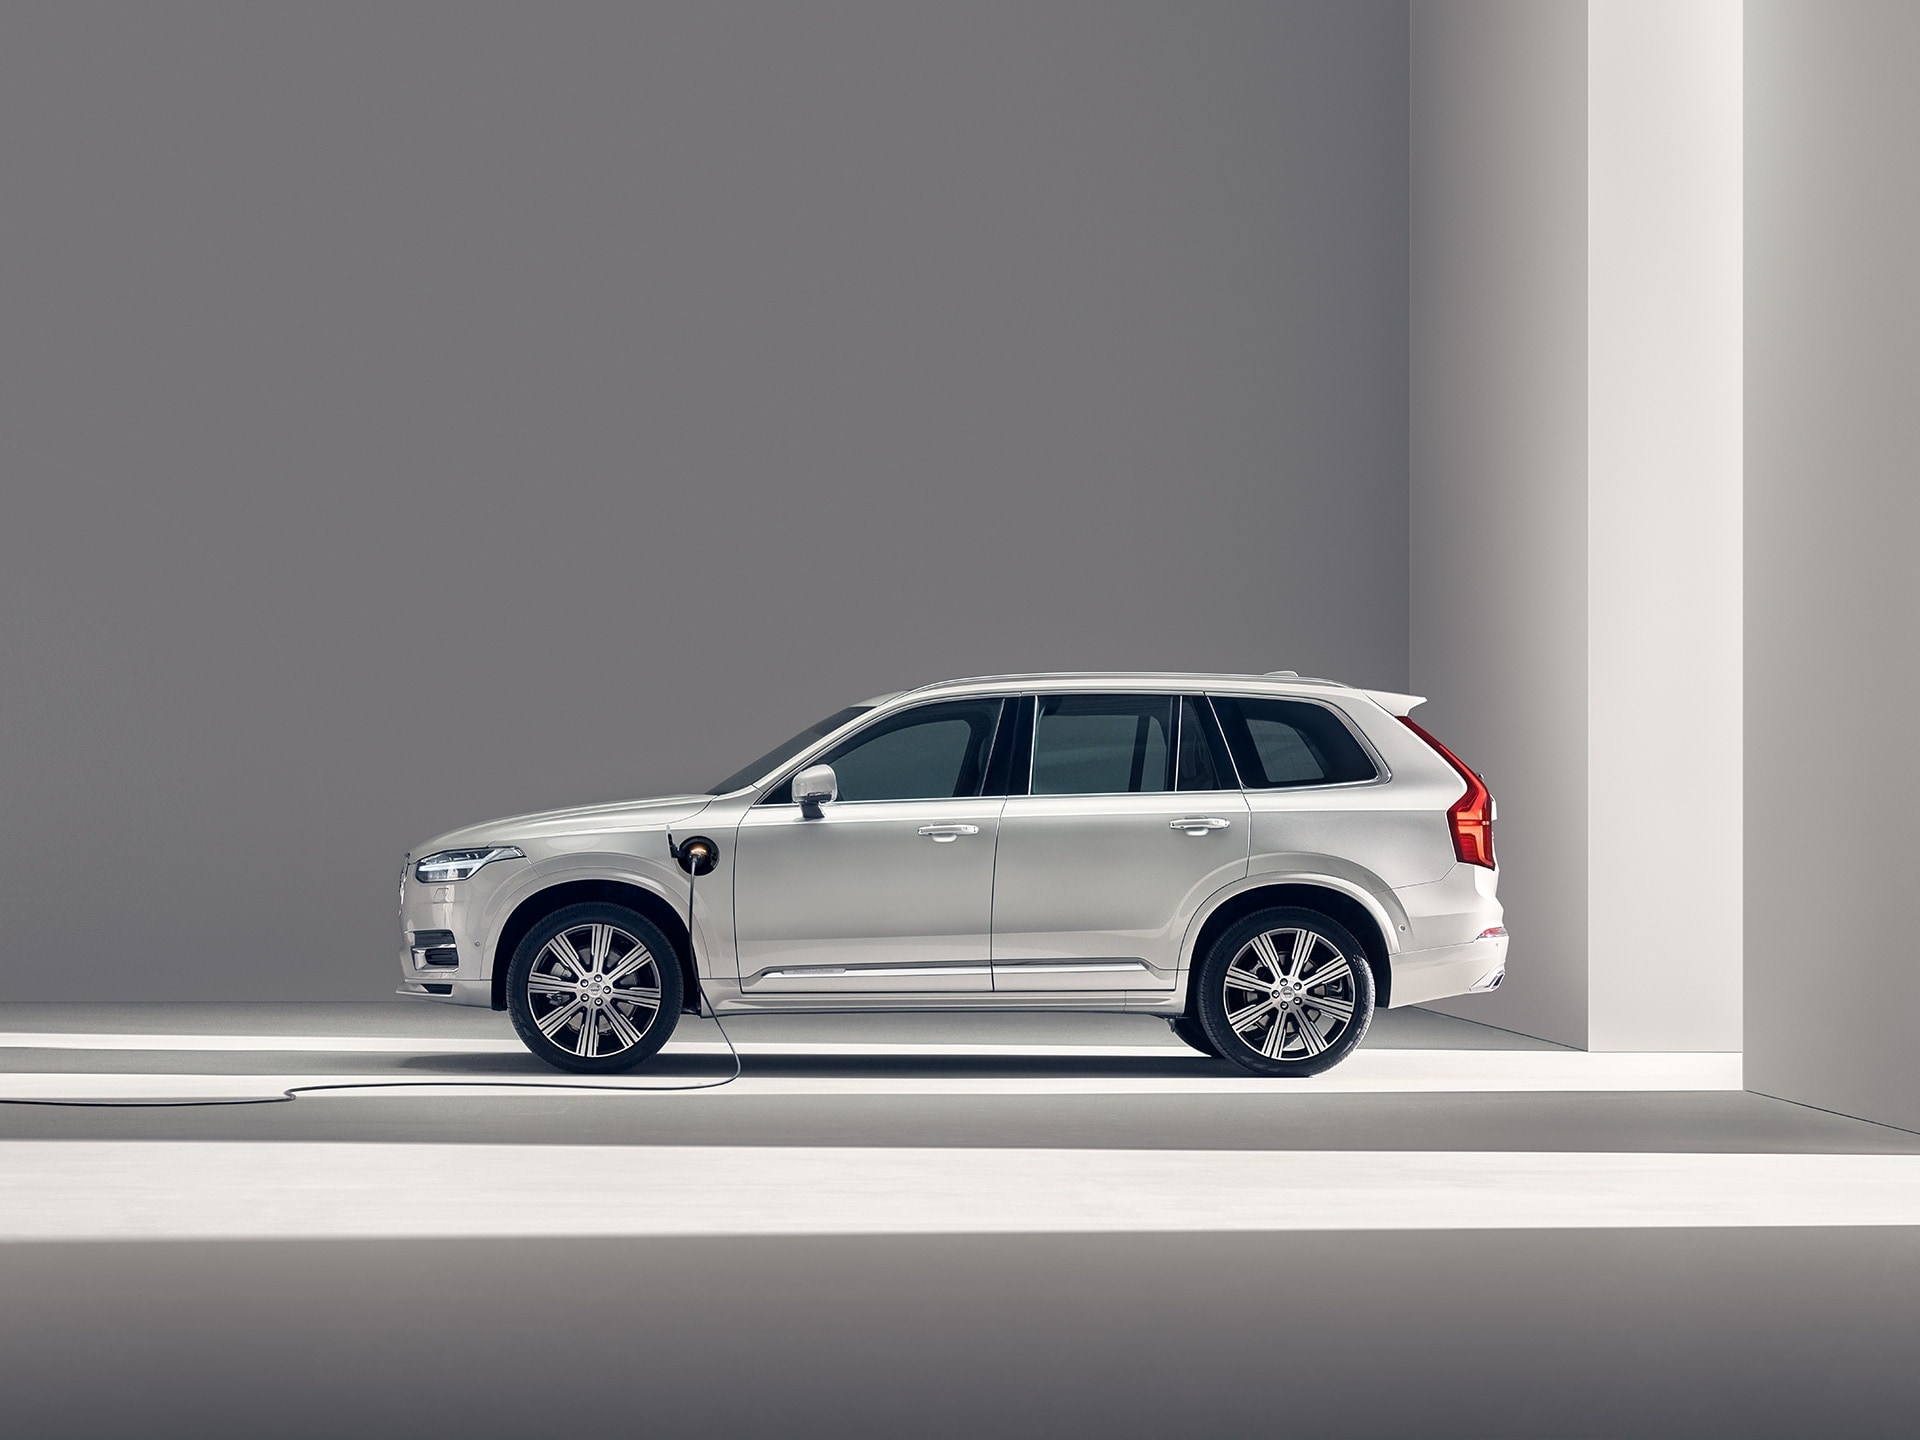 Una Volvo XC90 Recharge in carica